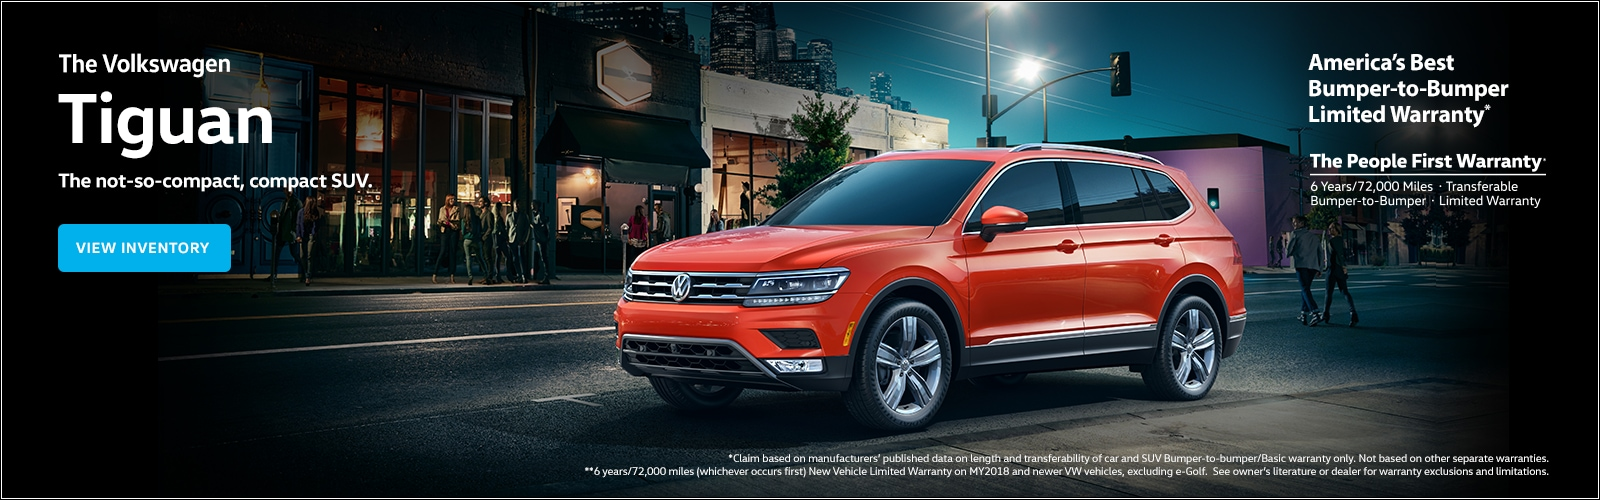 LaFontaine Volkswagen of Dearborn | Volkswagen Dealership in Dearborn